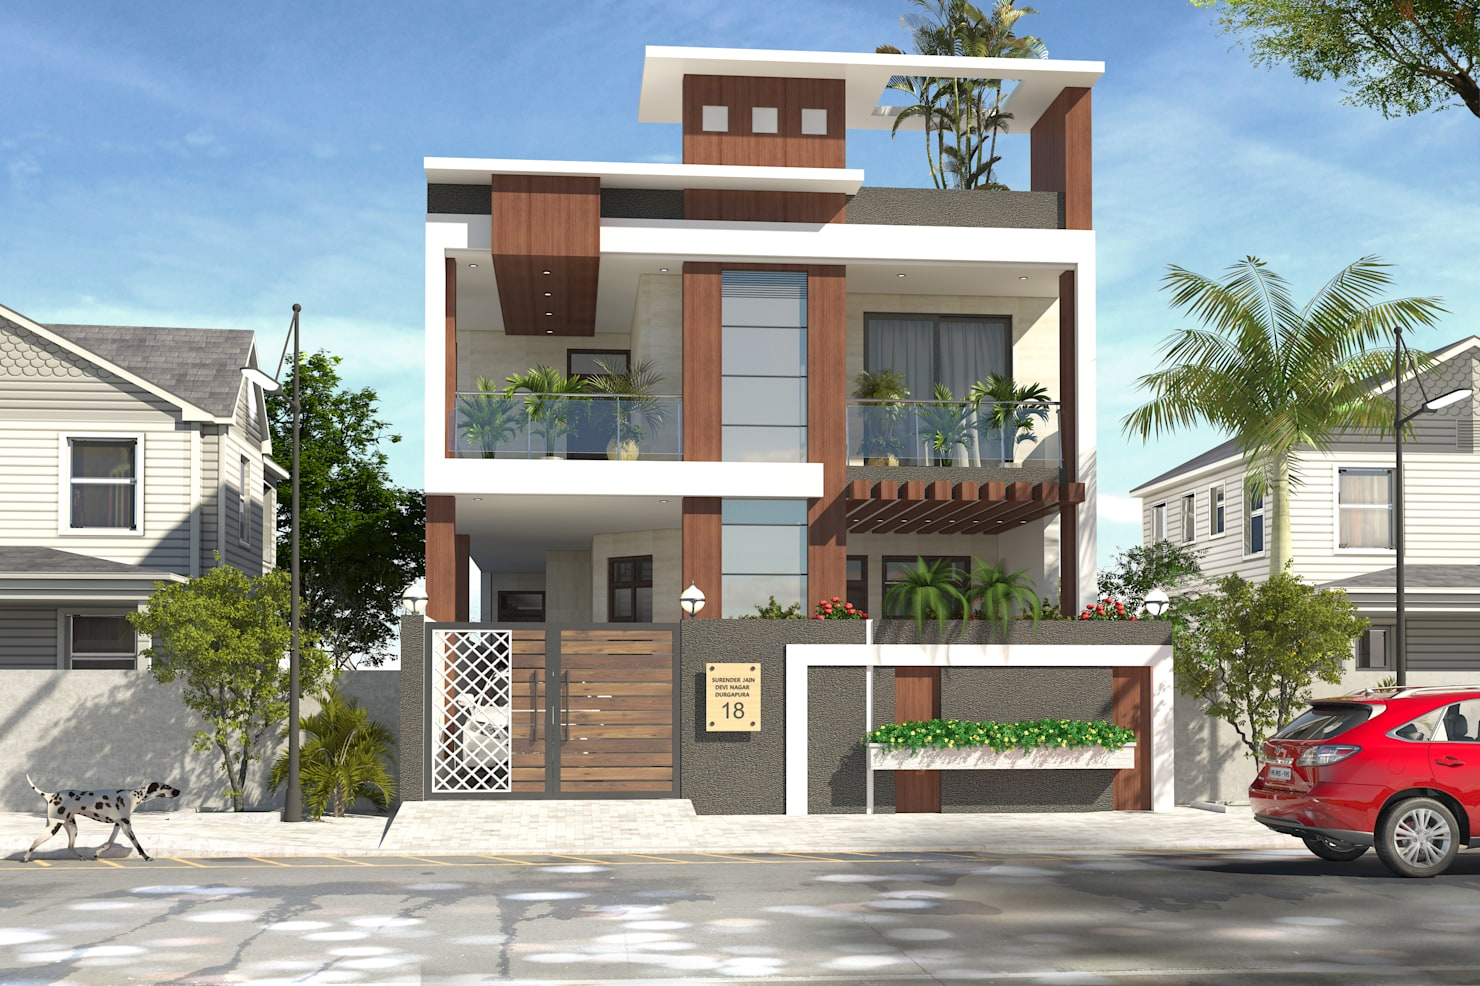 Things to consider before choosing a bungalow façade design